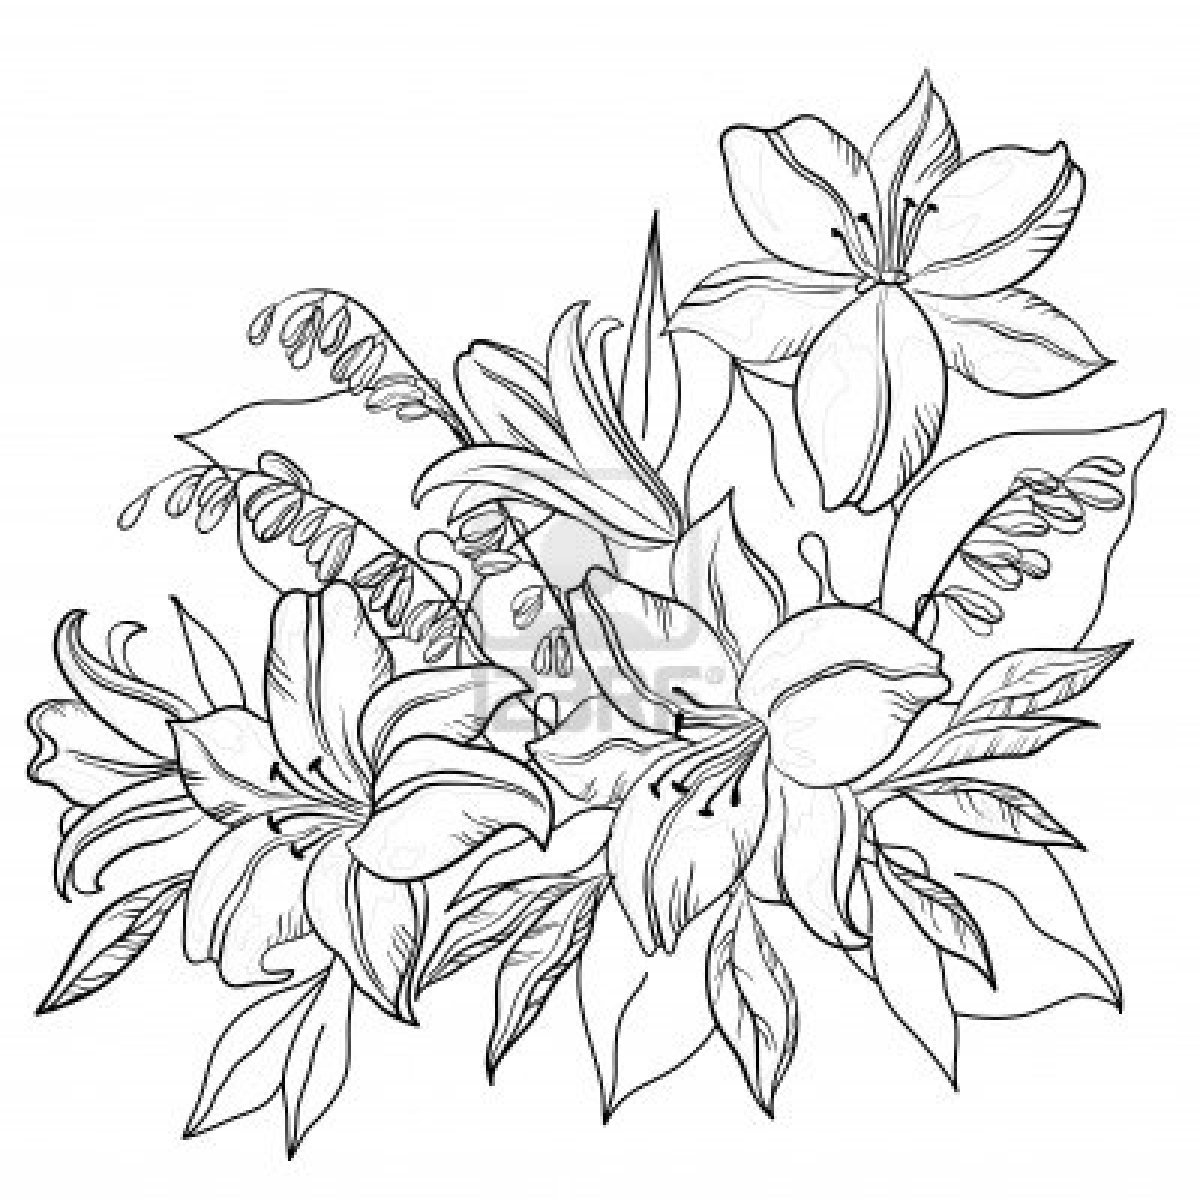 Flower Outline Drawing : Sunbeamflowers flowers outlines